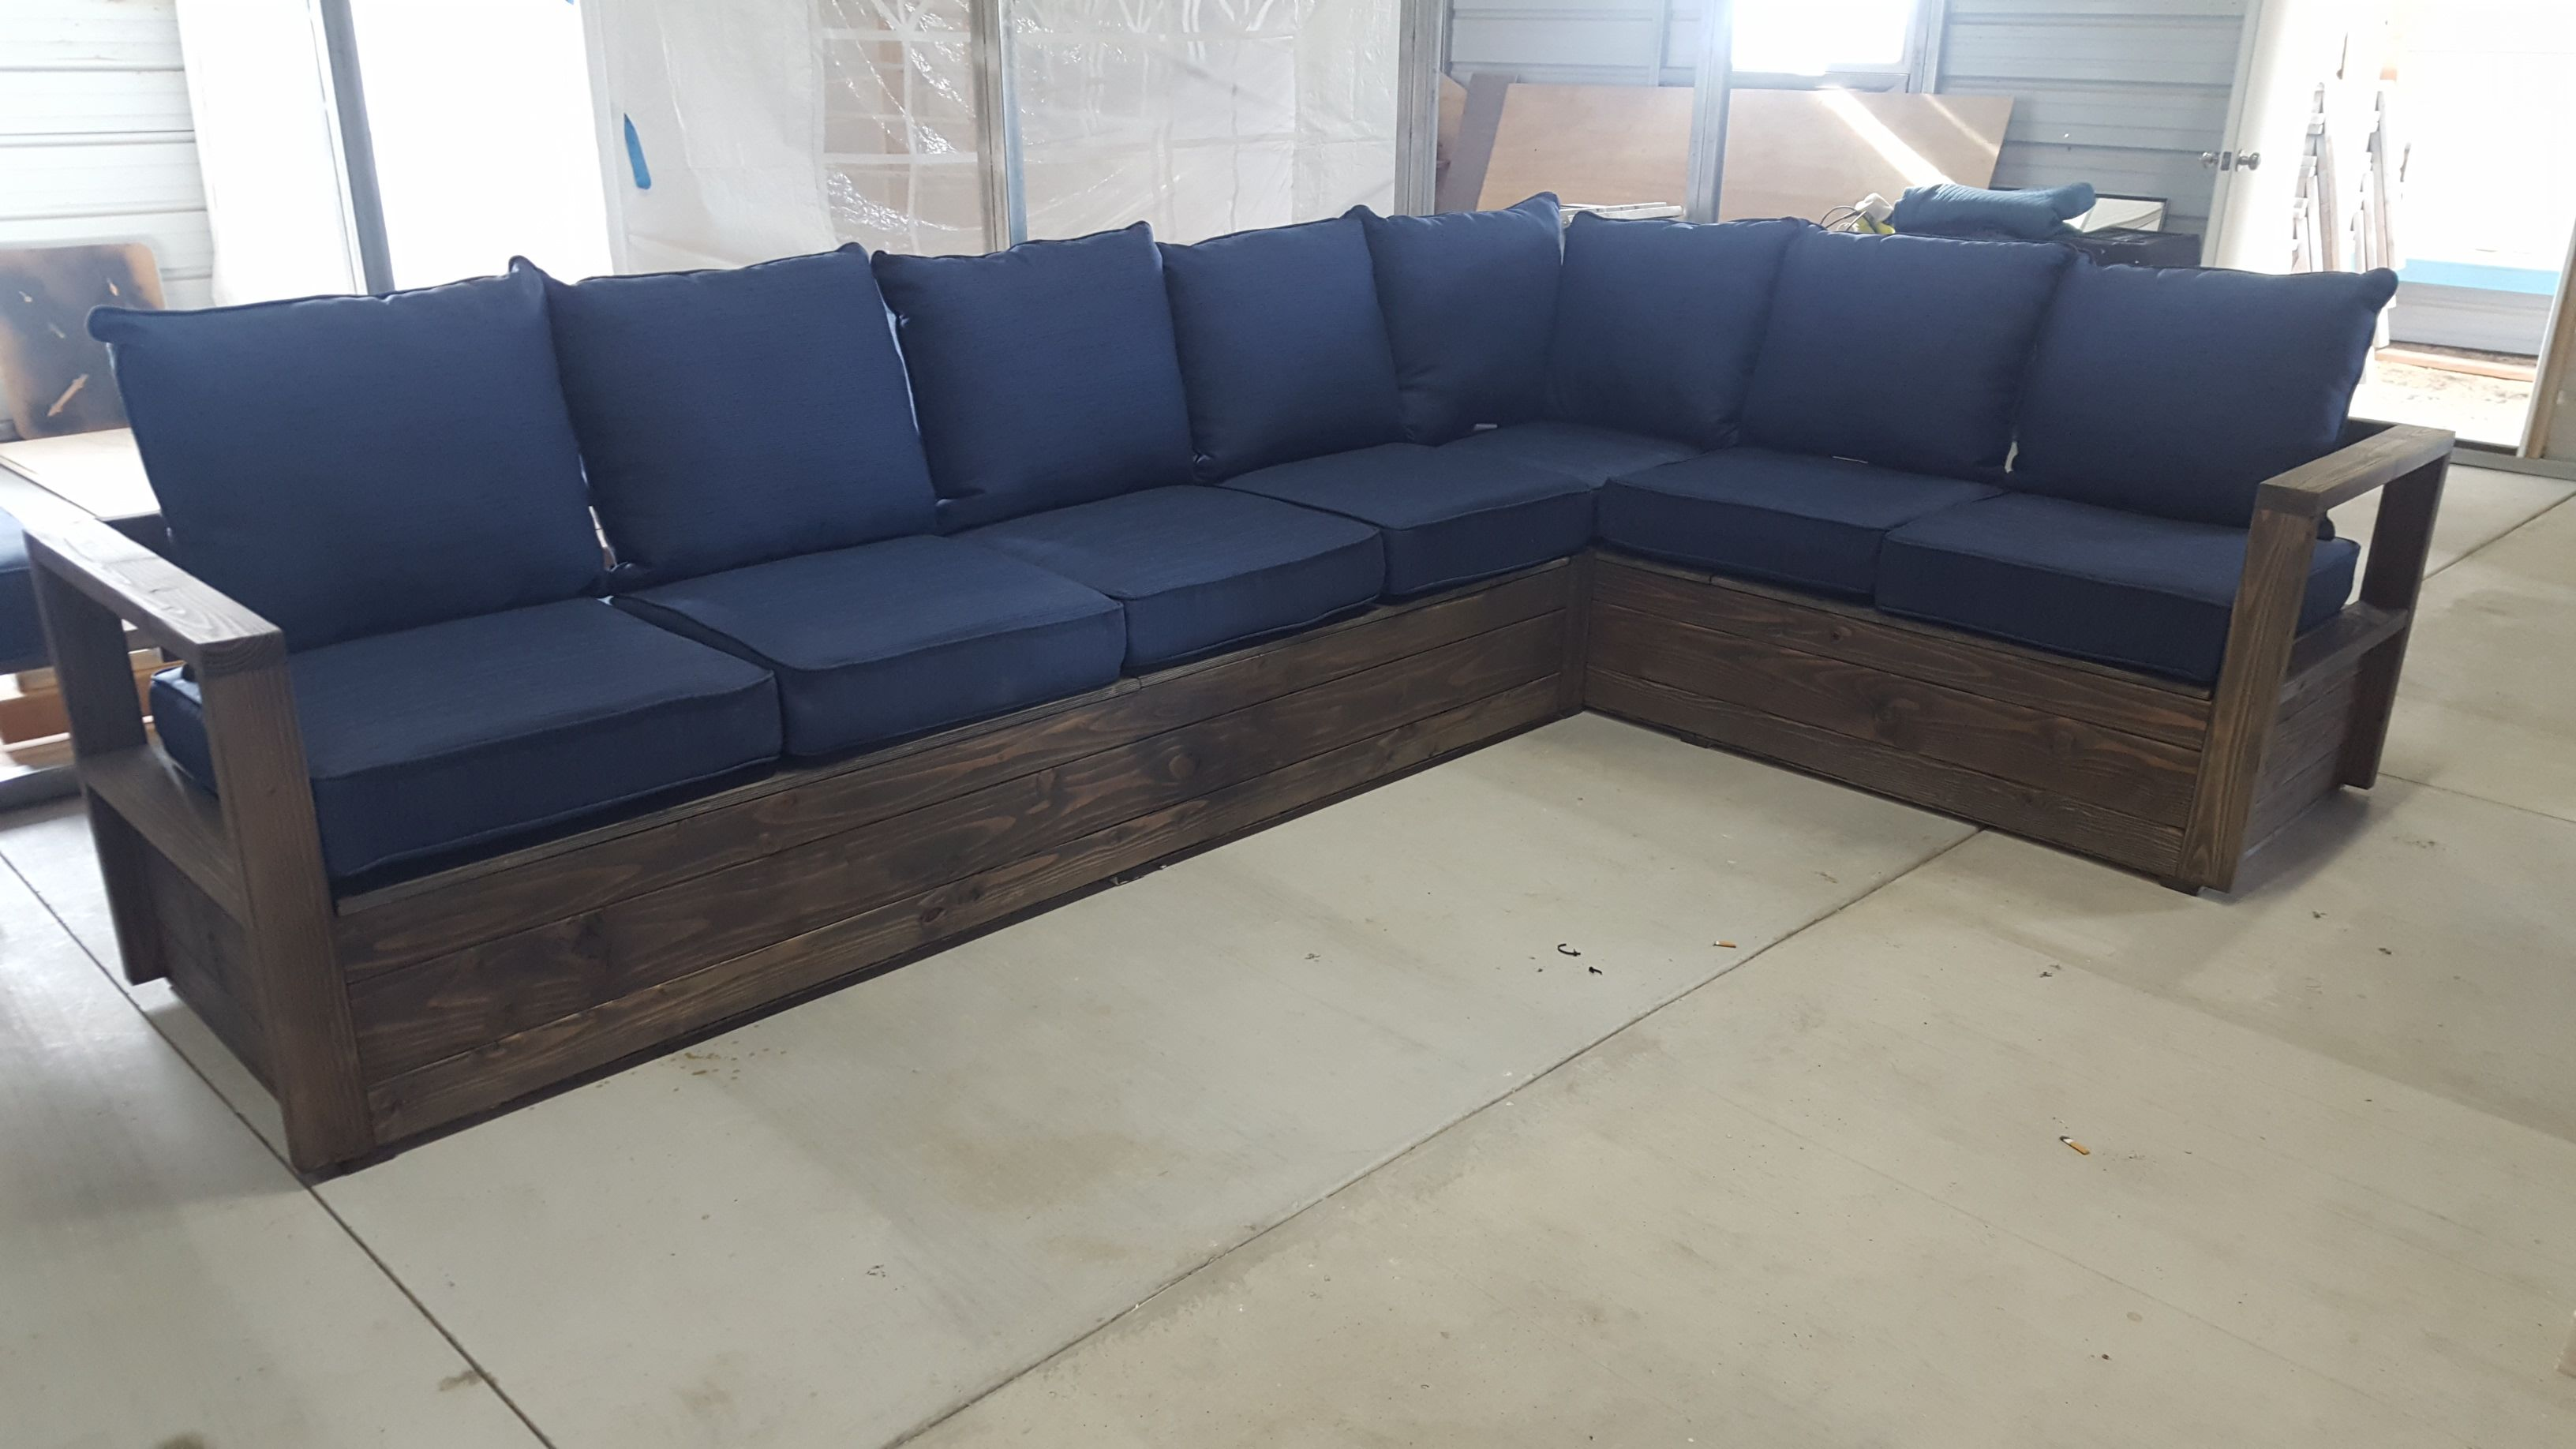 Ana White Storage Sectional Diy Projects Diy Deck Furniture